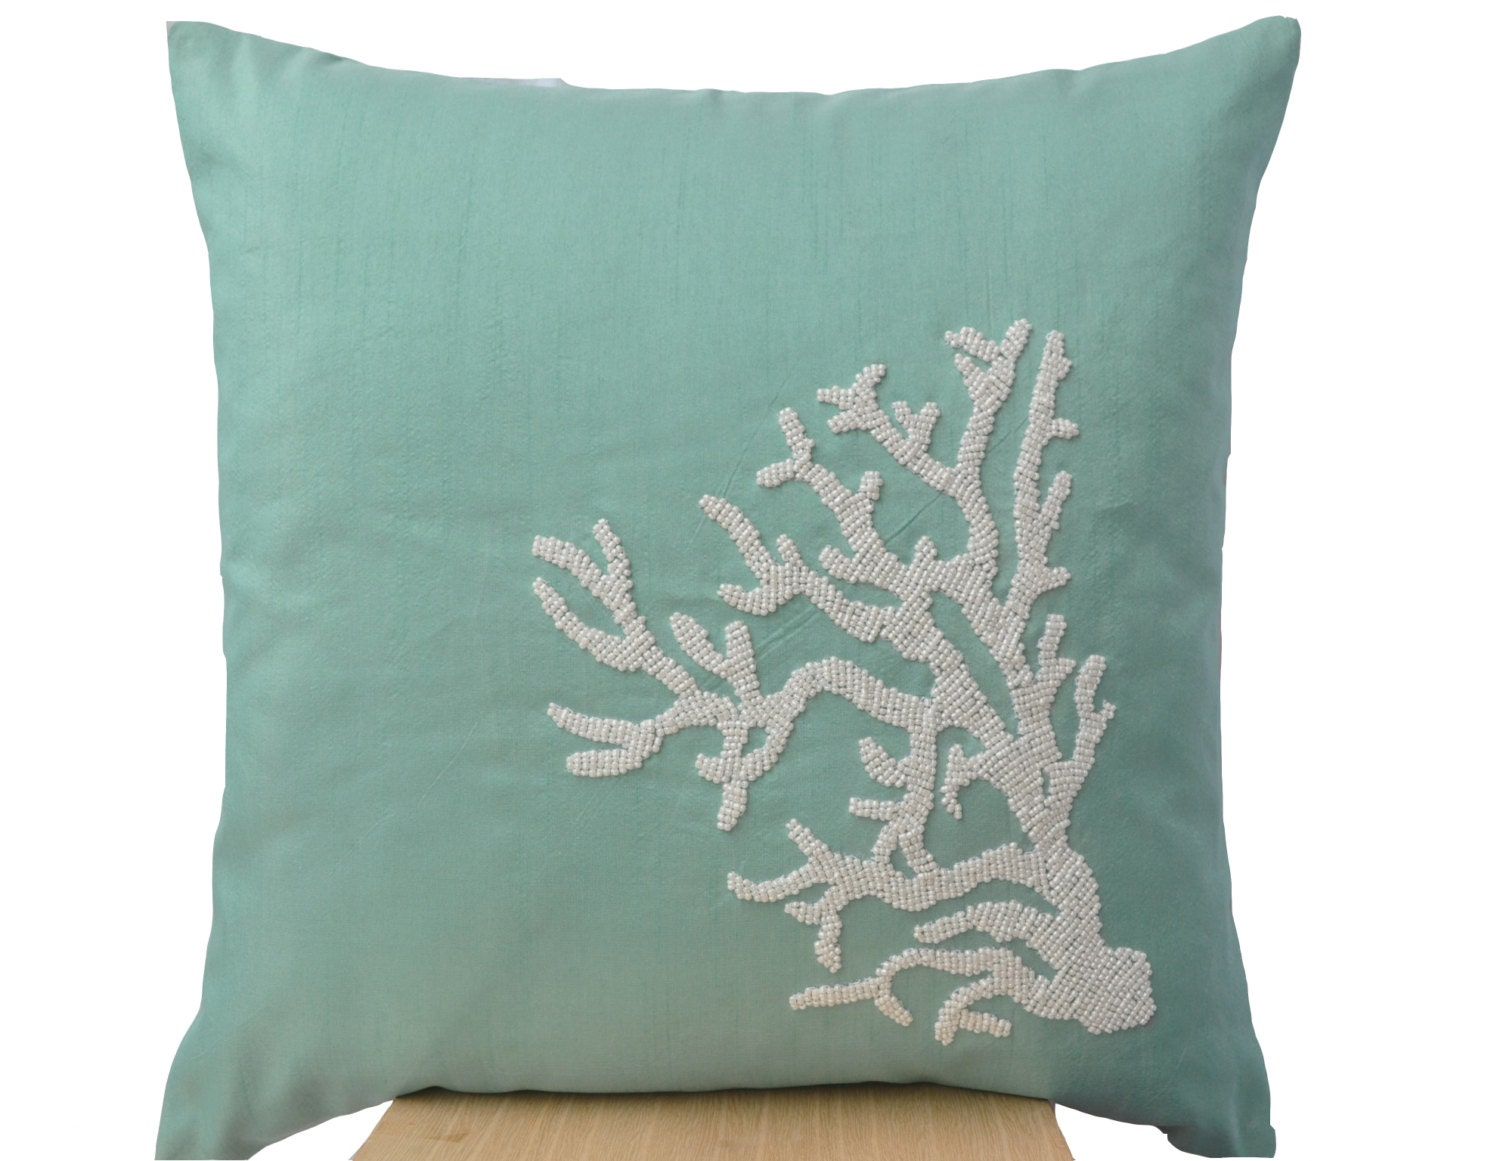 Sea Life Pillows Teal Throw Pillow Coral Pillow White Beads